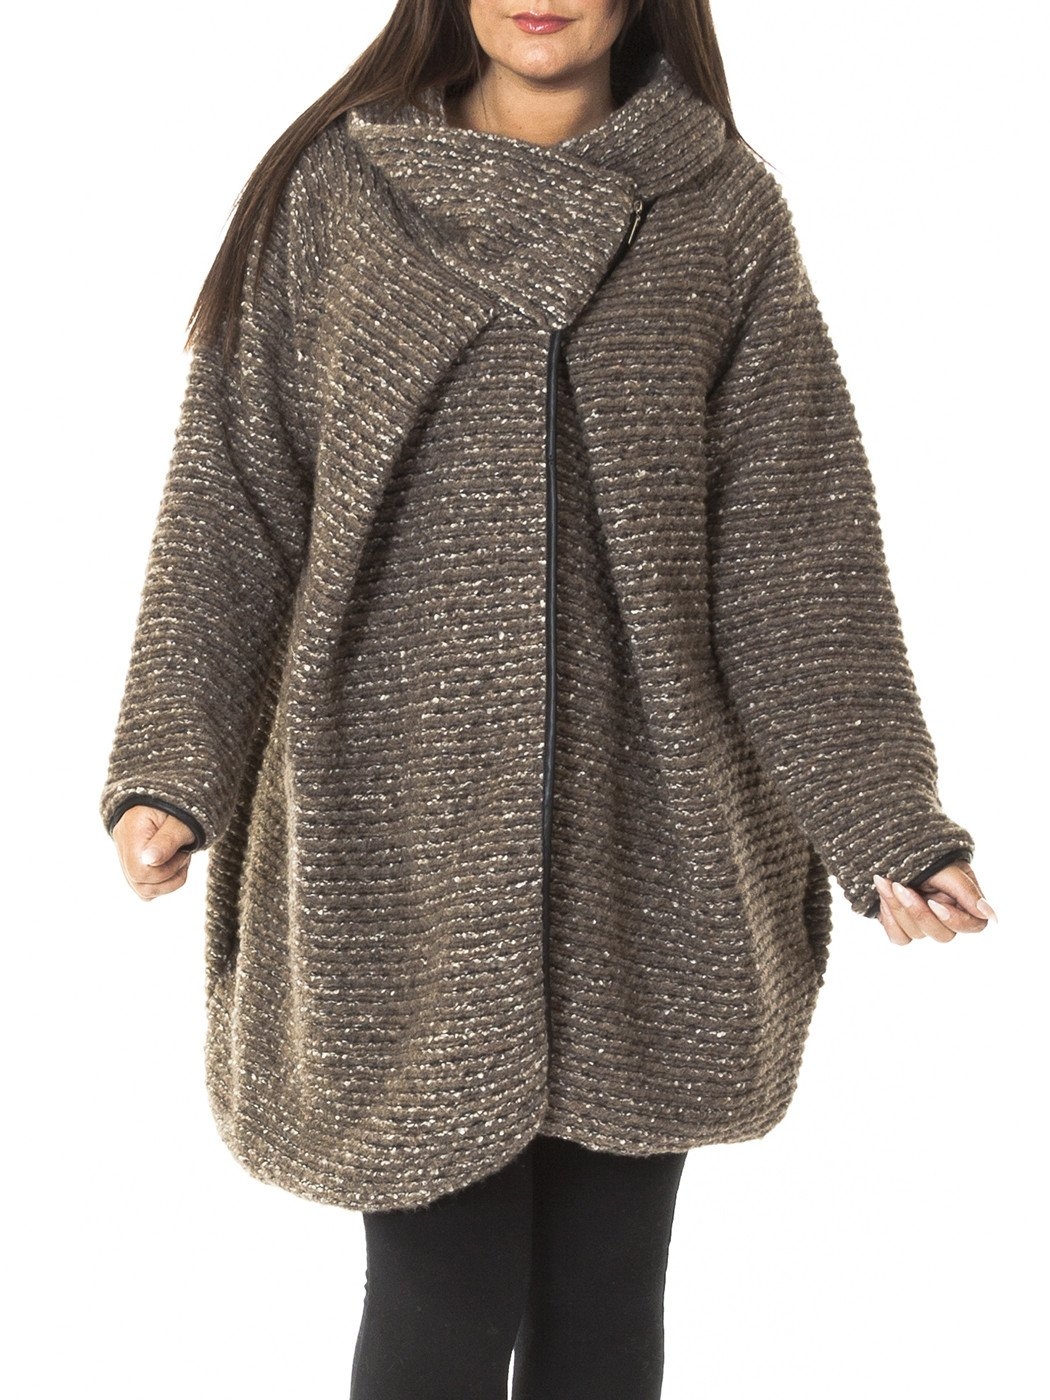 New Womens Italian Lagenlook Cape Winter Knitted Jacket ...